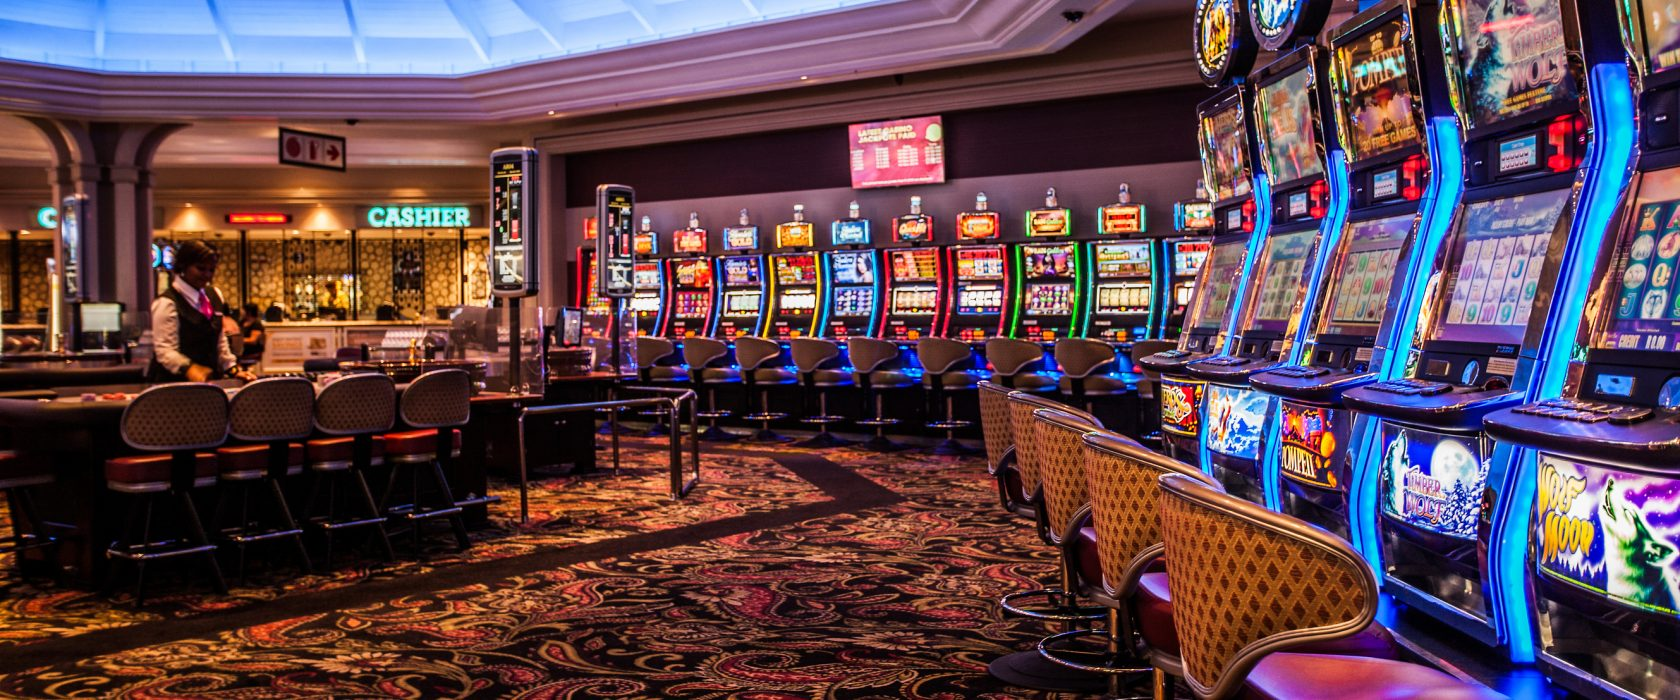 Hemingways Casino Gaming Floor